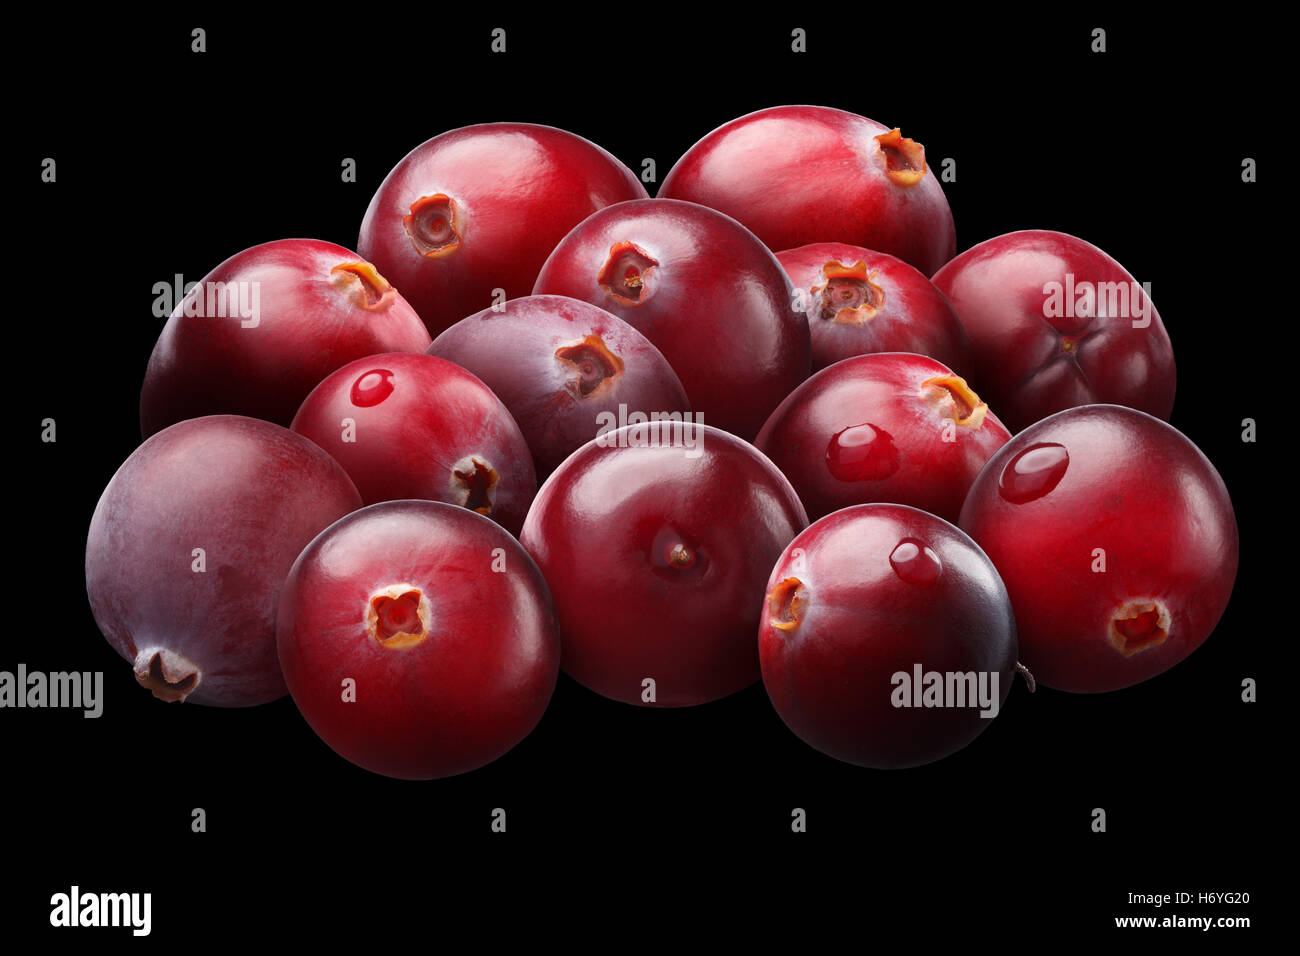 Pile of cranberries (Vaccinium oxycoccus), superpositioned, light brushed, shadowless. Clipping paths - Stock Image